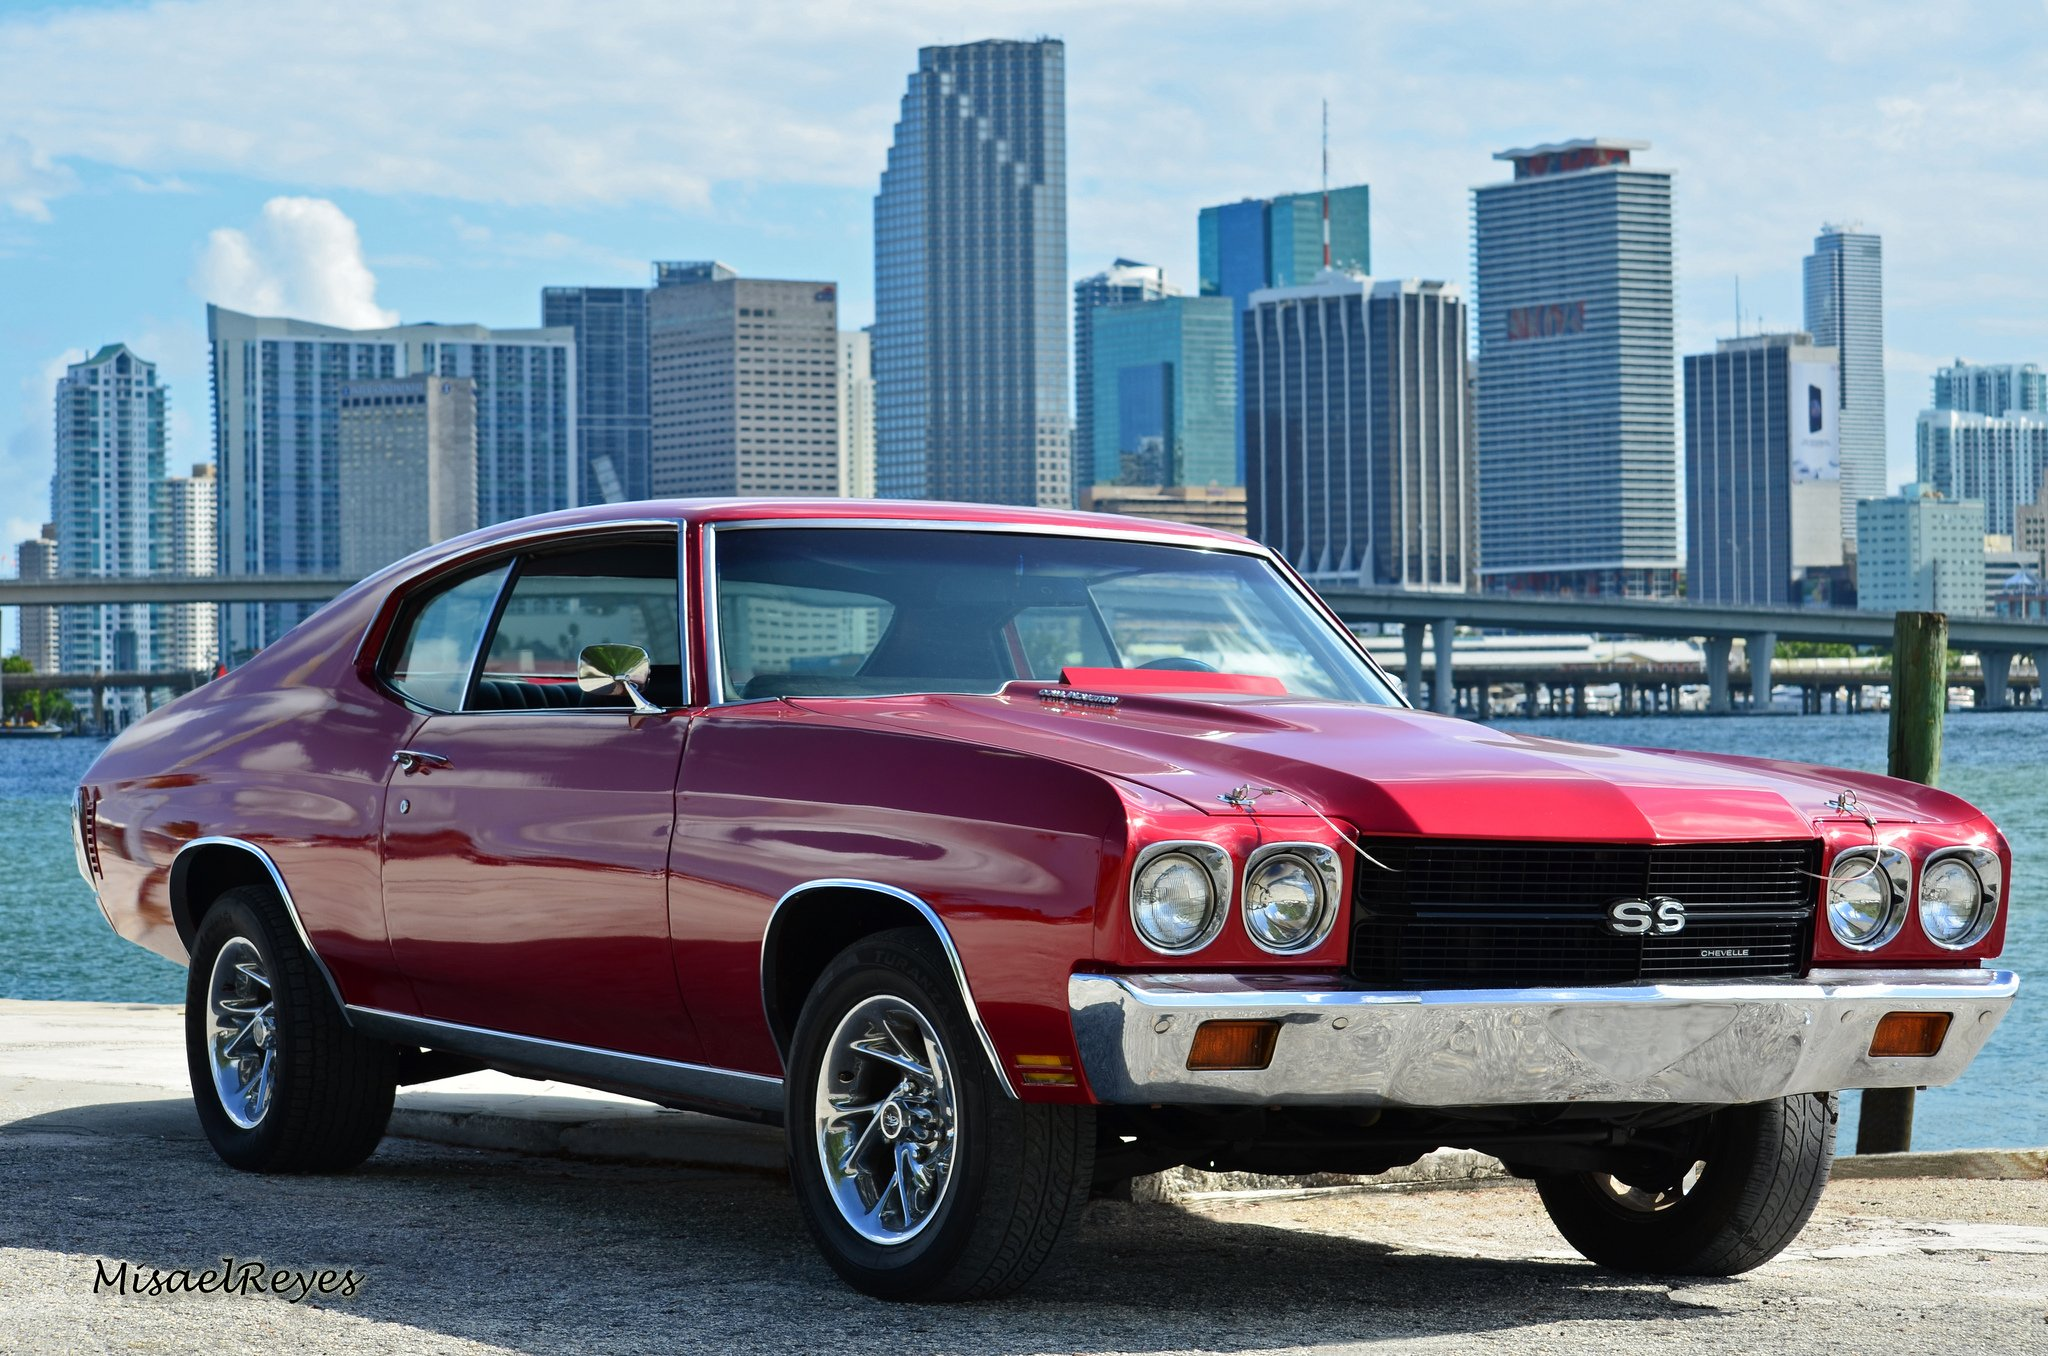 Chevelle chevrolet chevy malibu cars muscle vintage el camino usa ...